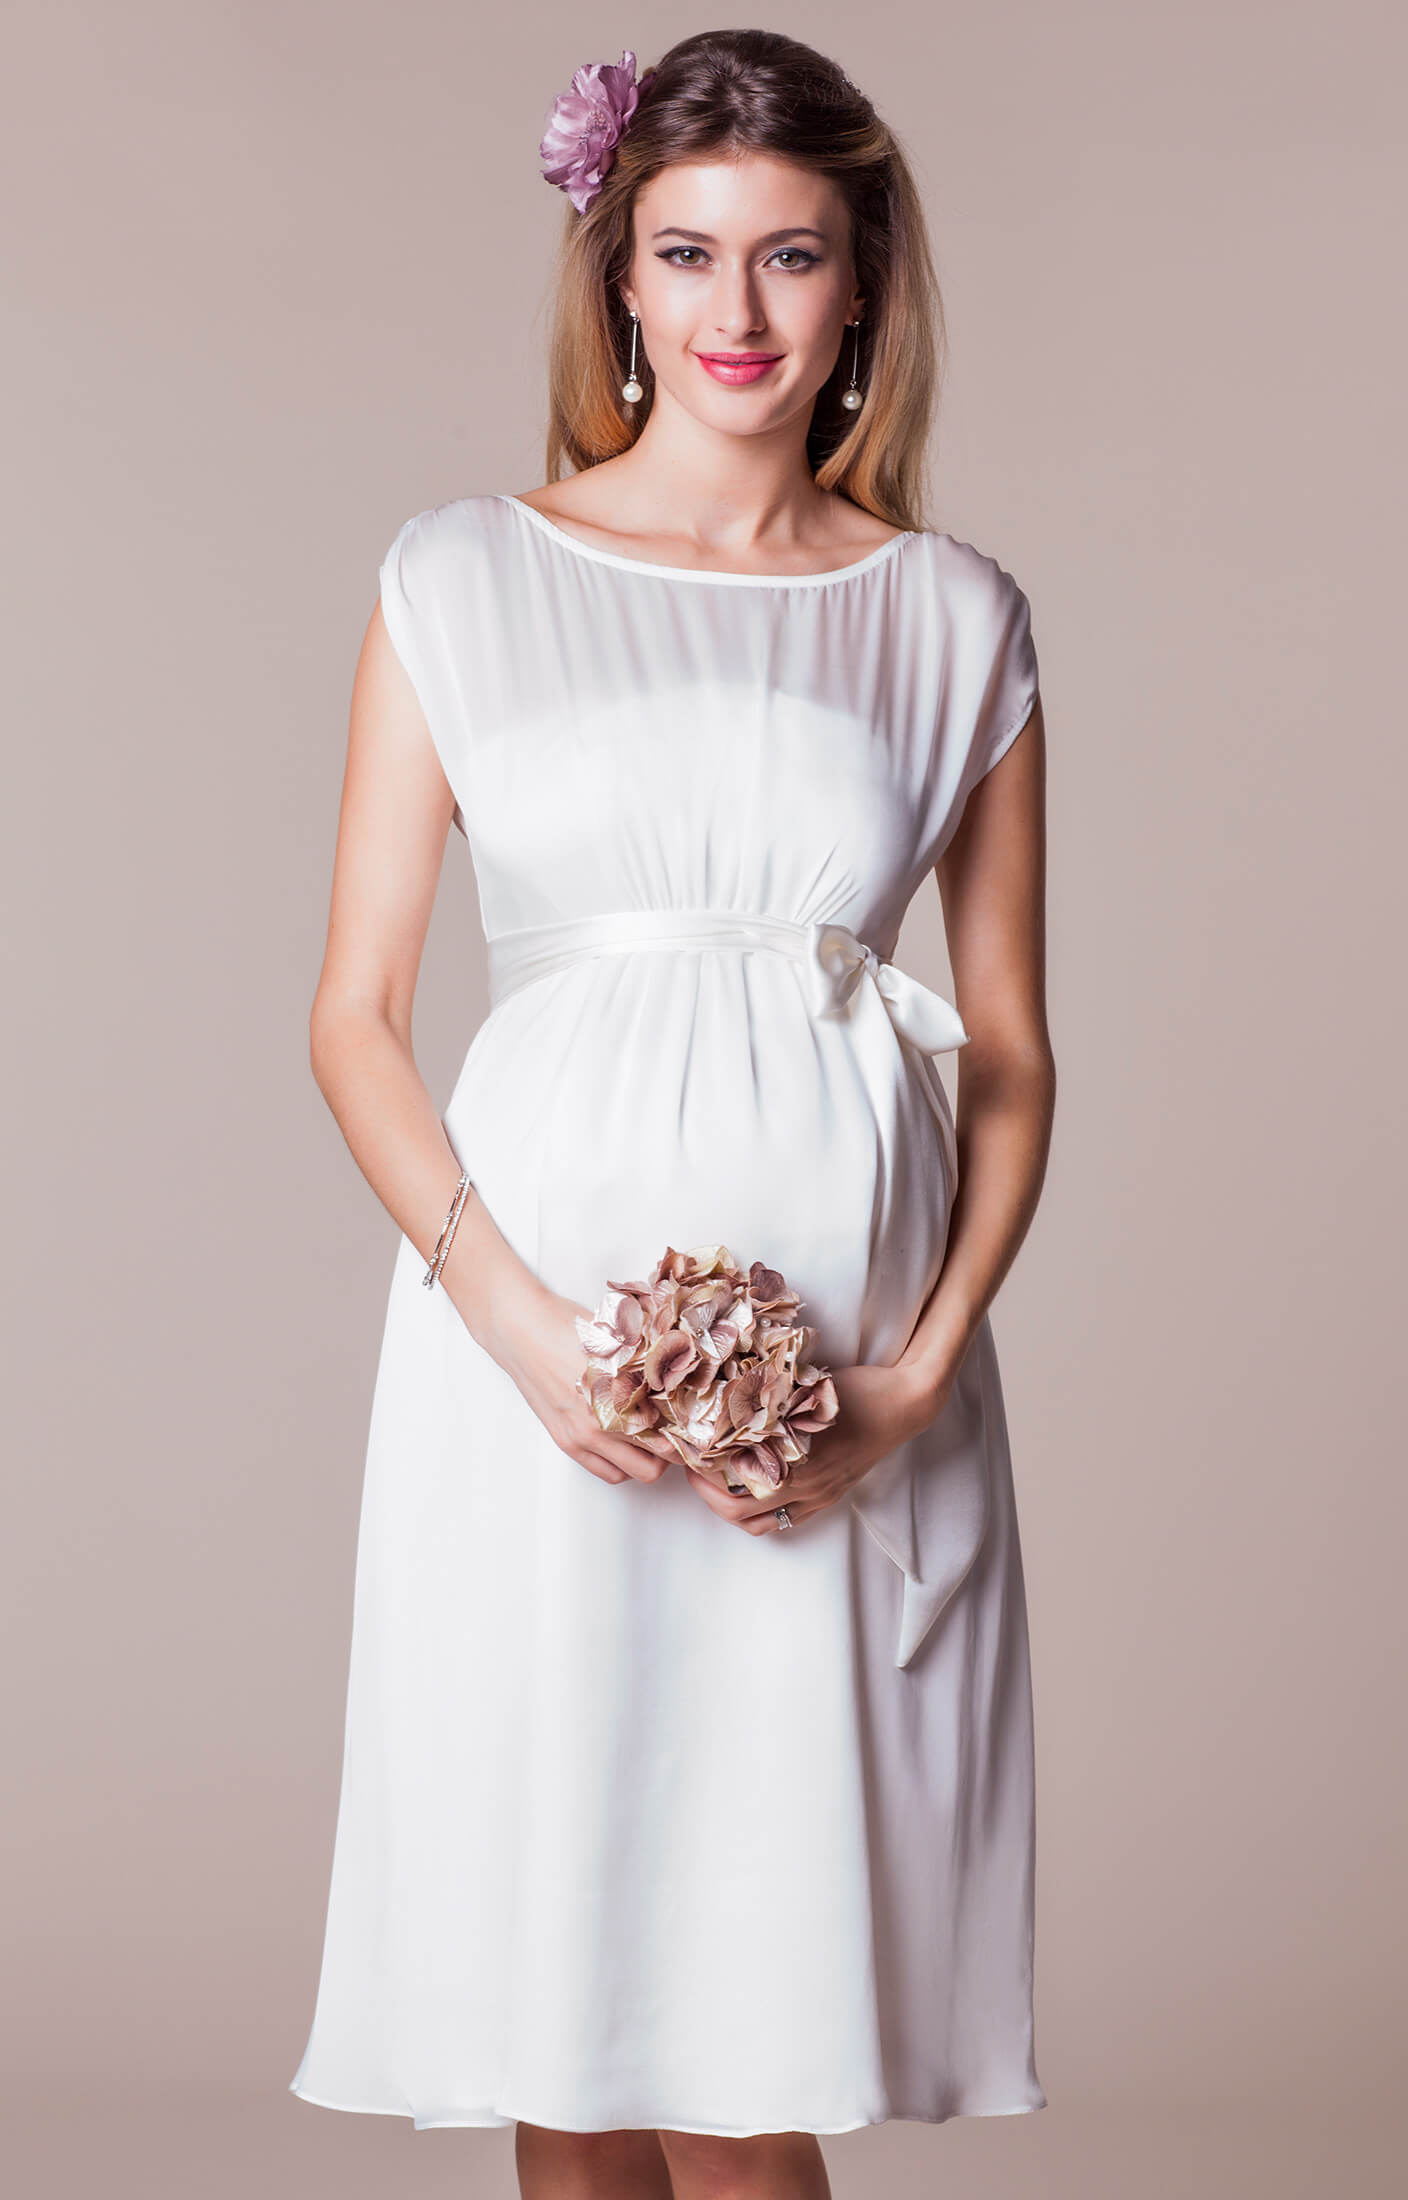 Maya maternity wedding gown short ivory maternity wedding maya maternity wedding gown short ivory maternity wedding dresses evening wear and party clothes by tiffany rose us ombrellifo Images